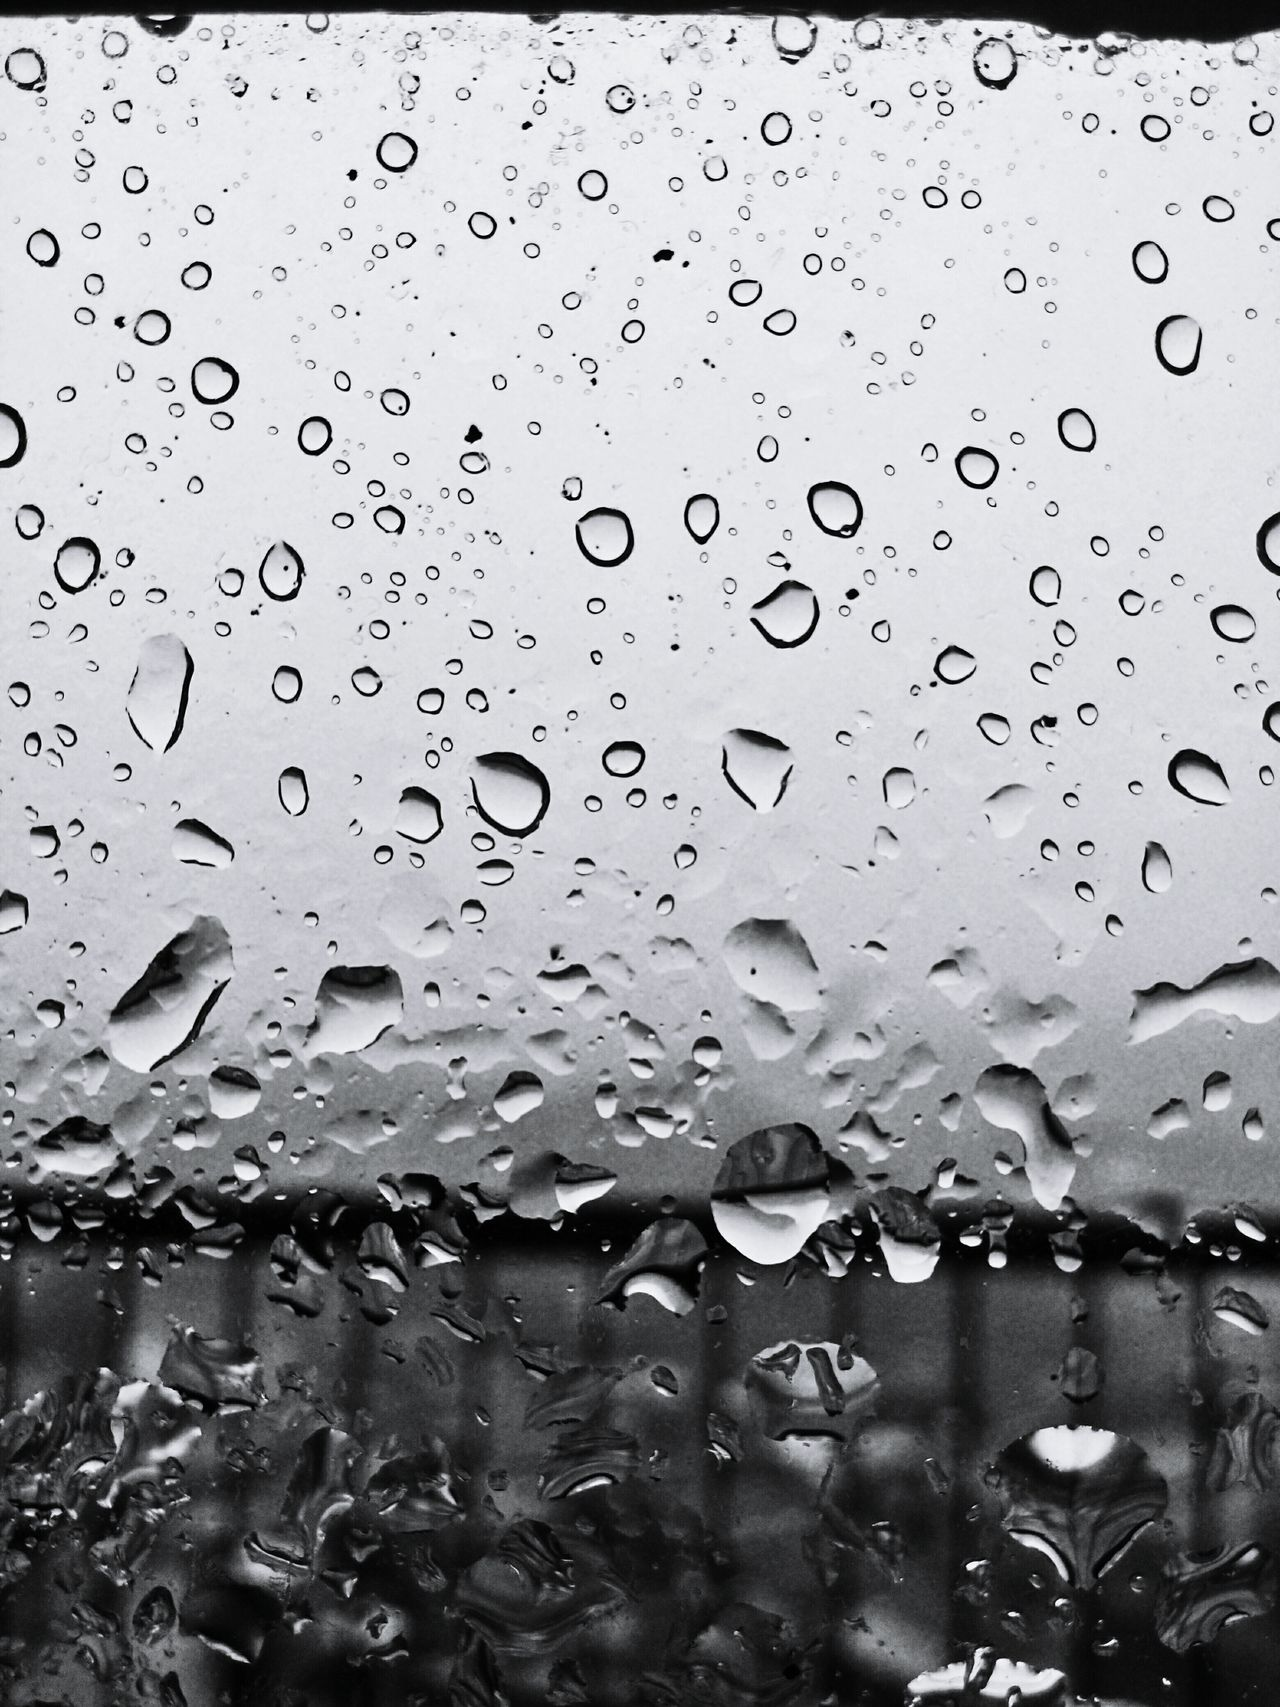 Typhoon Raindrops Window The View From My Window Rainy Days Raining Outside Cooped Up Inside